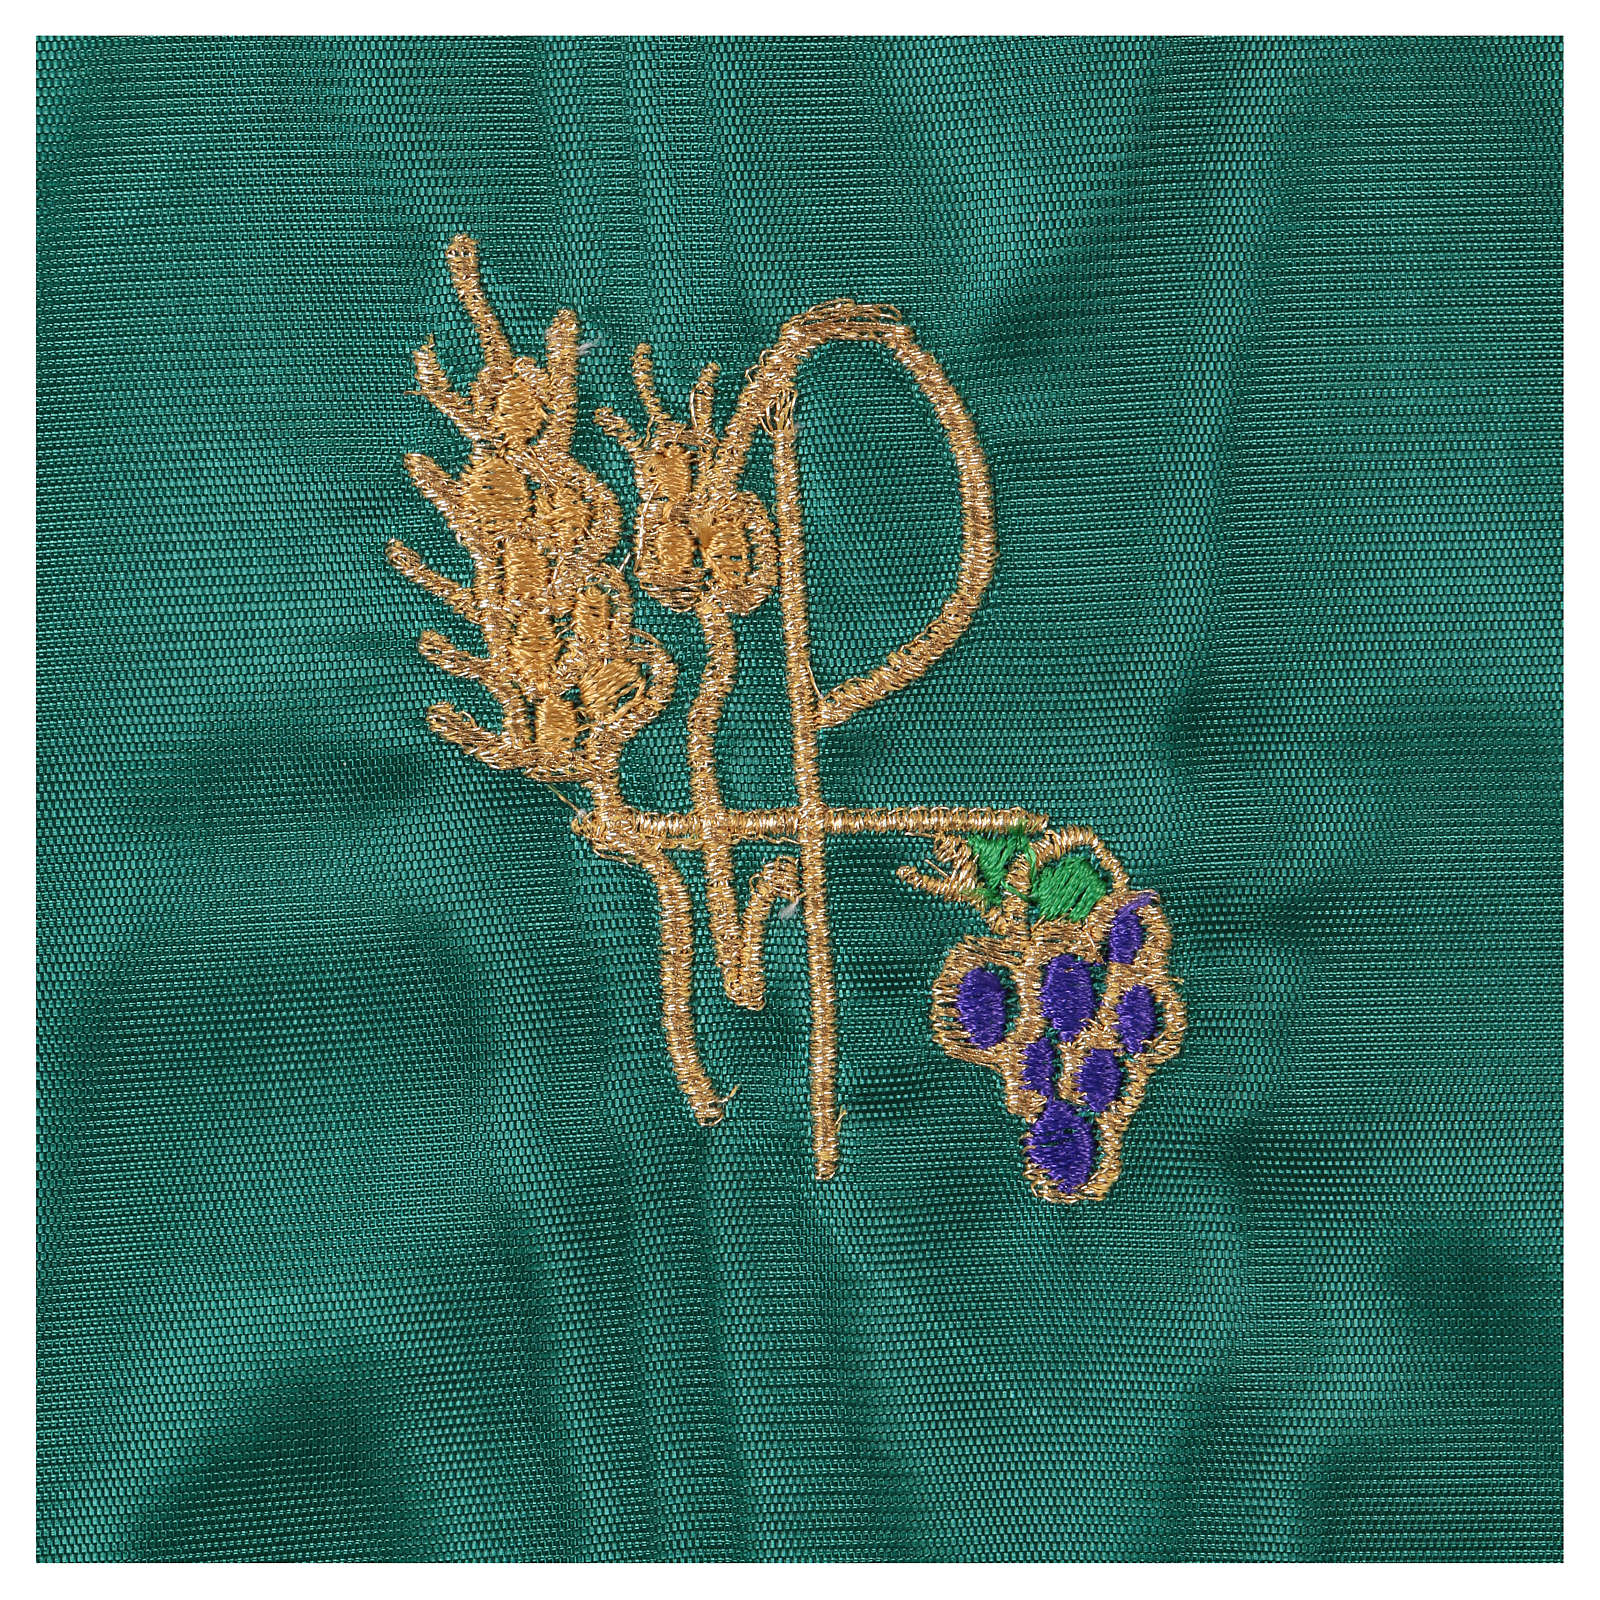 Chalice pall with Chi-Rho, ears of wheat and grapes embroidery, green fabric 4